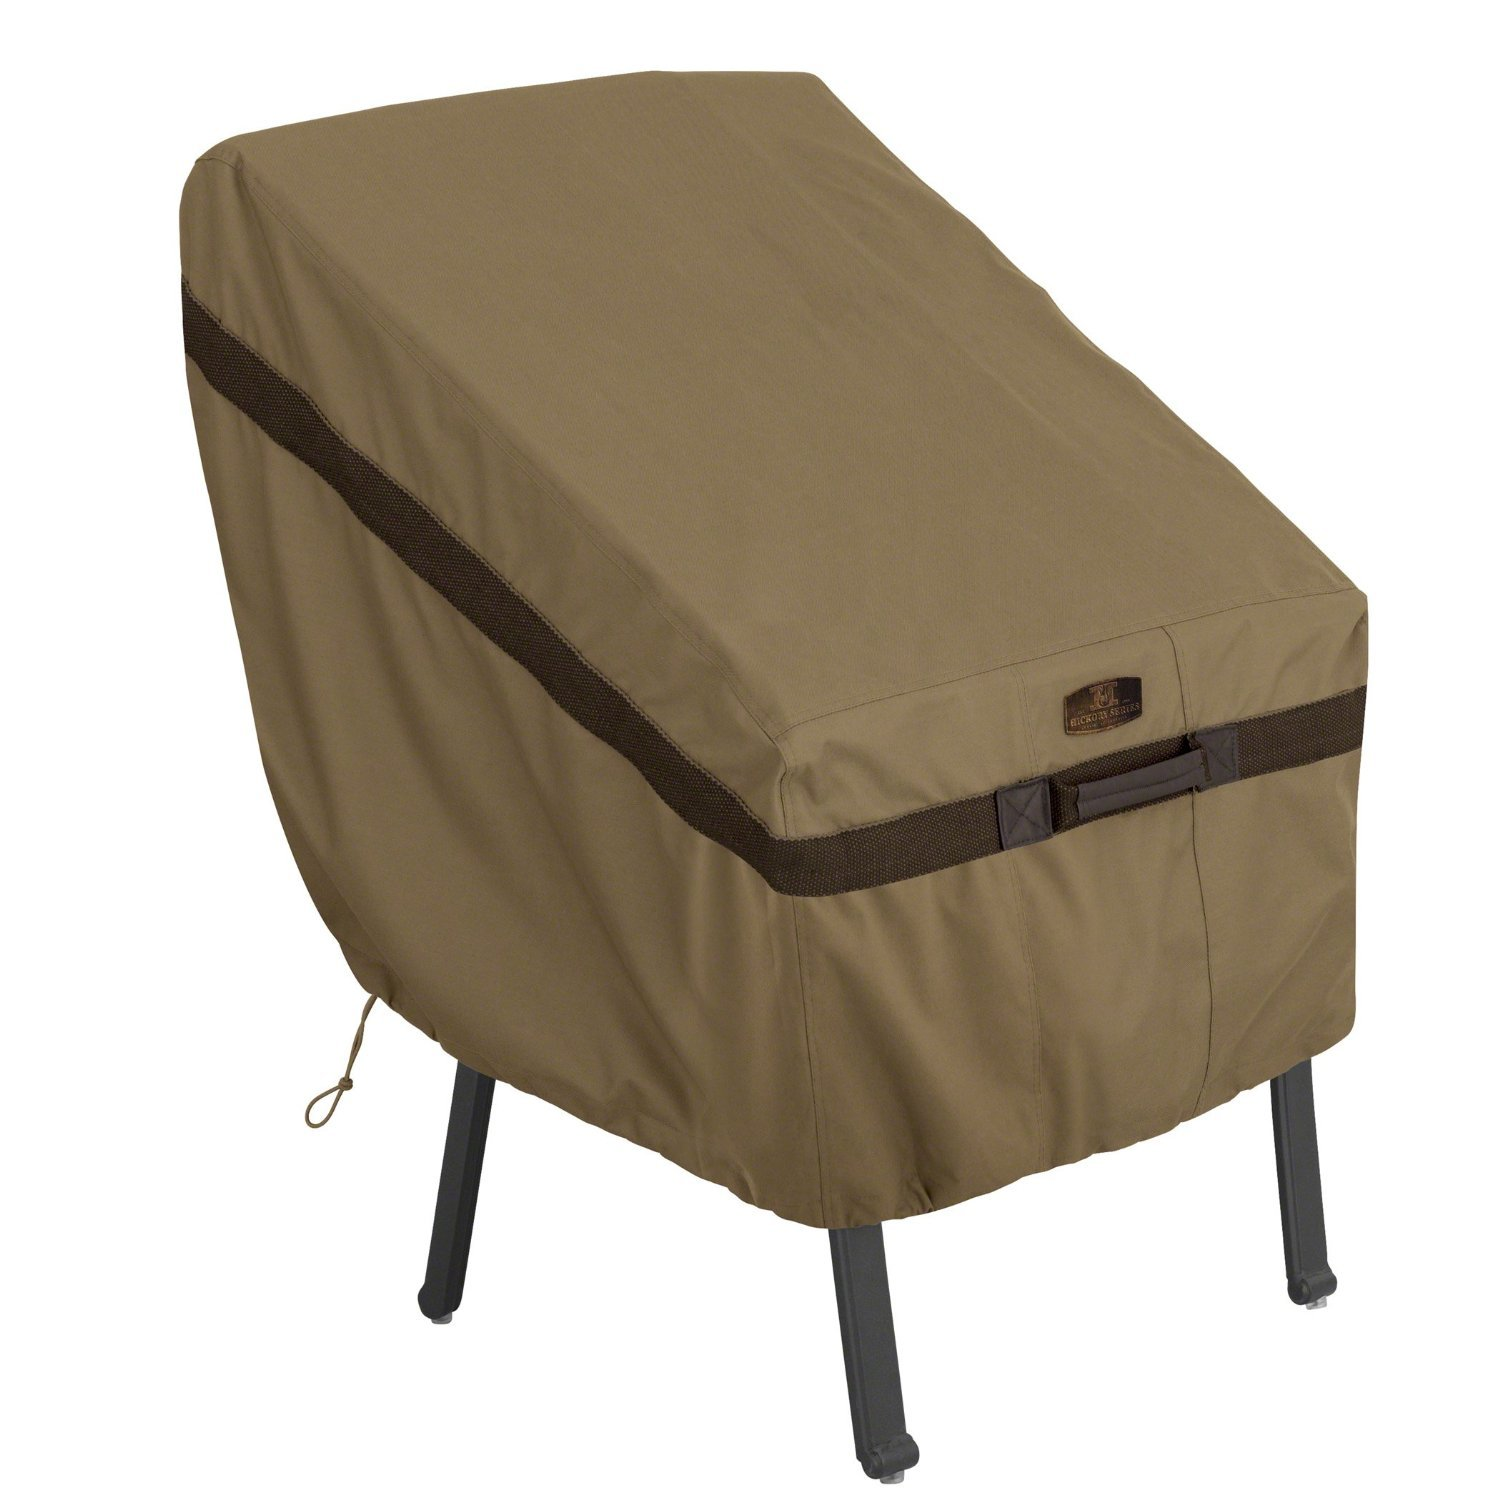 Classic Accessories Hickory Heavy Duty Standard Patio Chair Cover - Durable and Water Resistant Patio Set Cover (55-208-012401-EC)